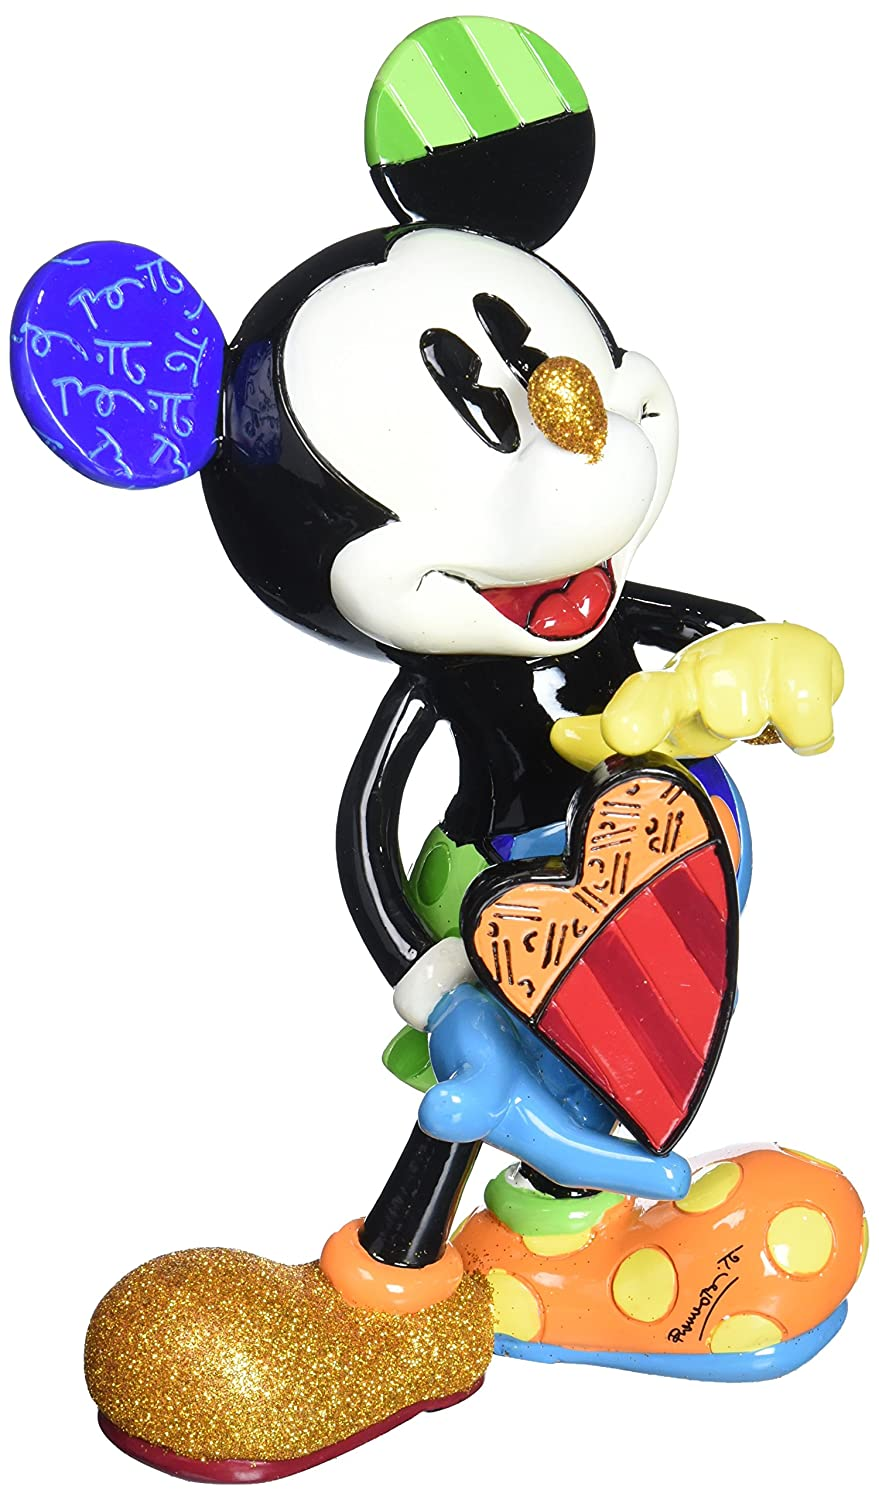 ENESCO 4052551 Disney Britto Collection Mickey with Rotating Heart, Stein, bunt, 13 x 11 x 22 cm